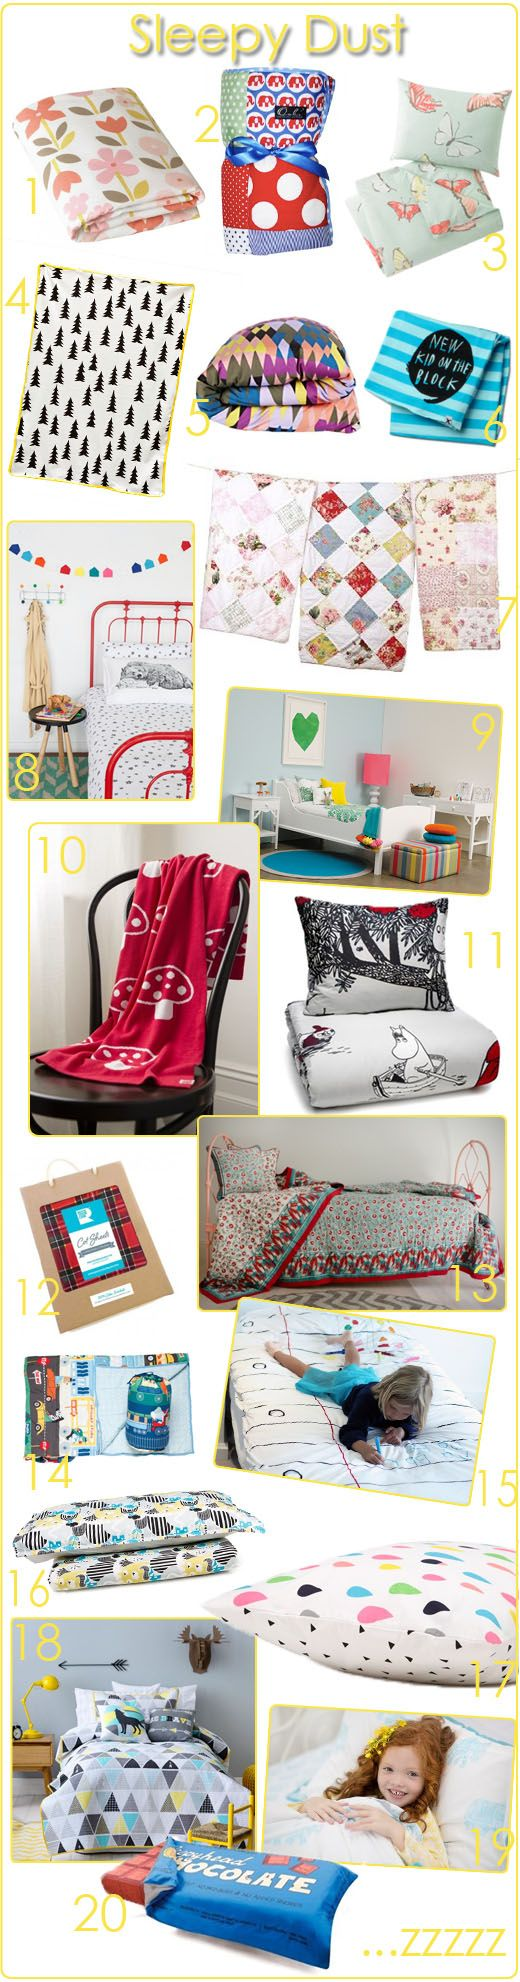 KidStyleFile Roundup : Top 20 Baby and Kids Bedding Picks